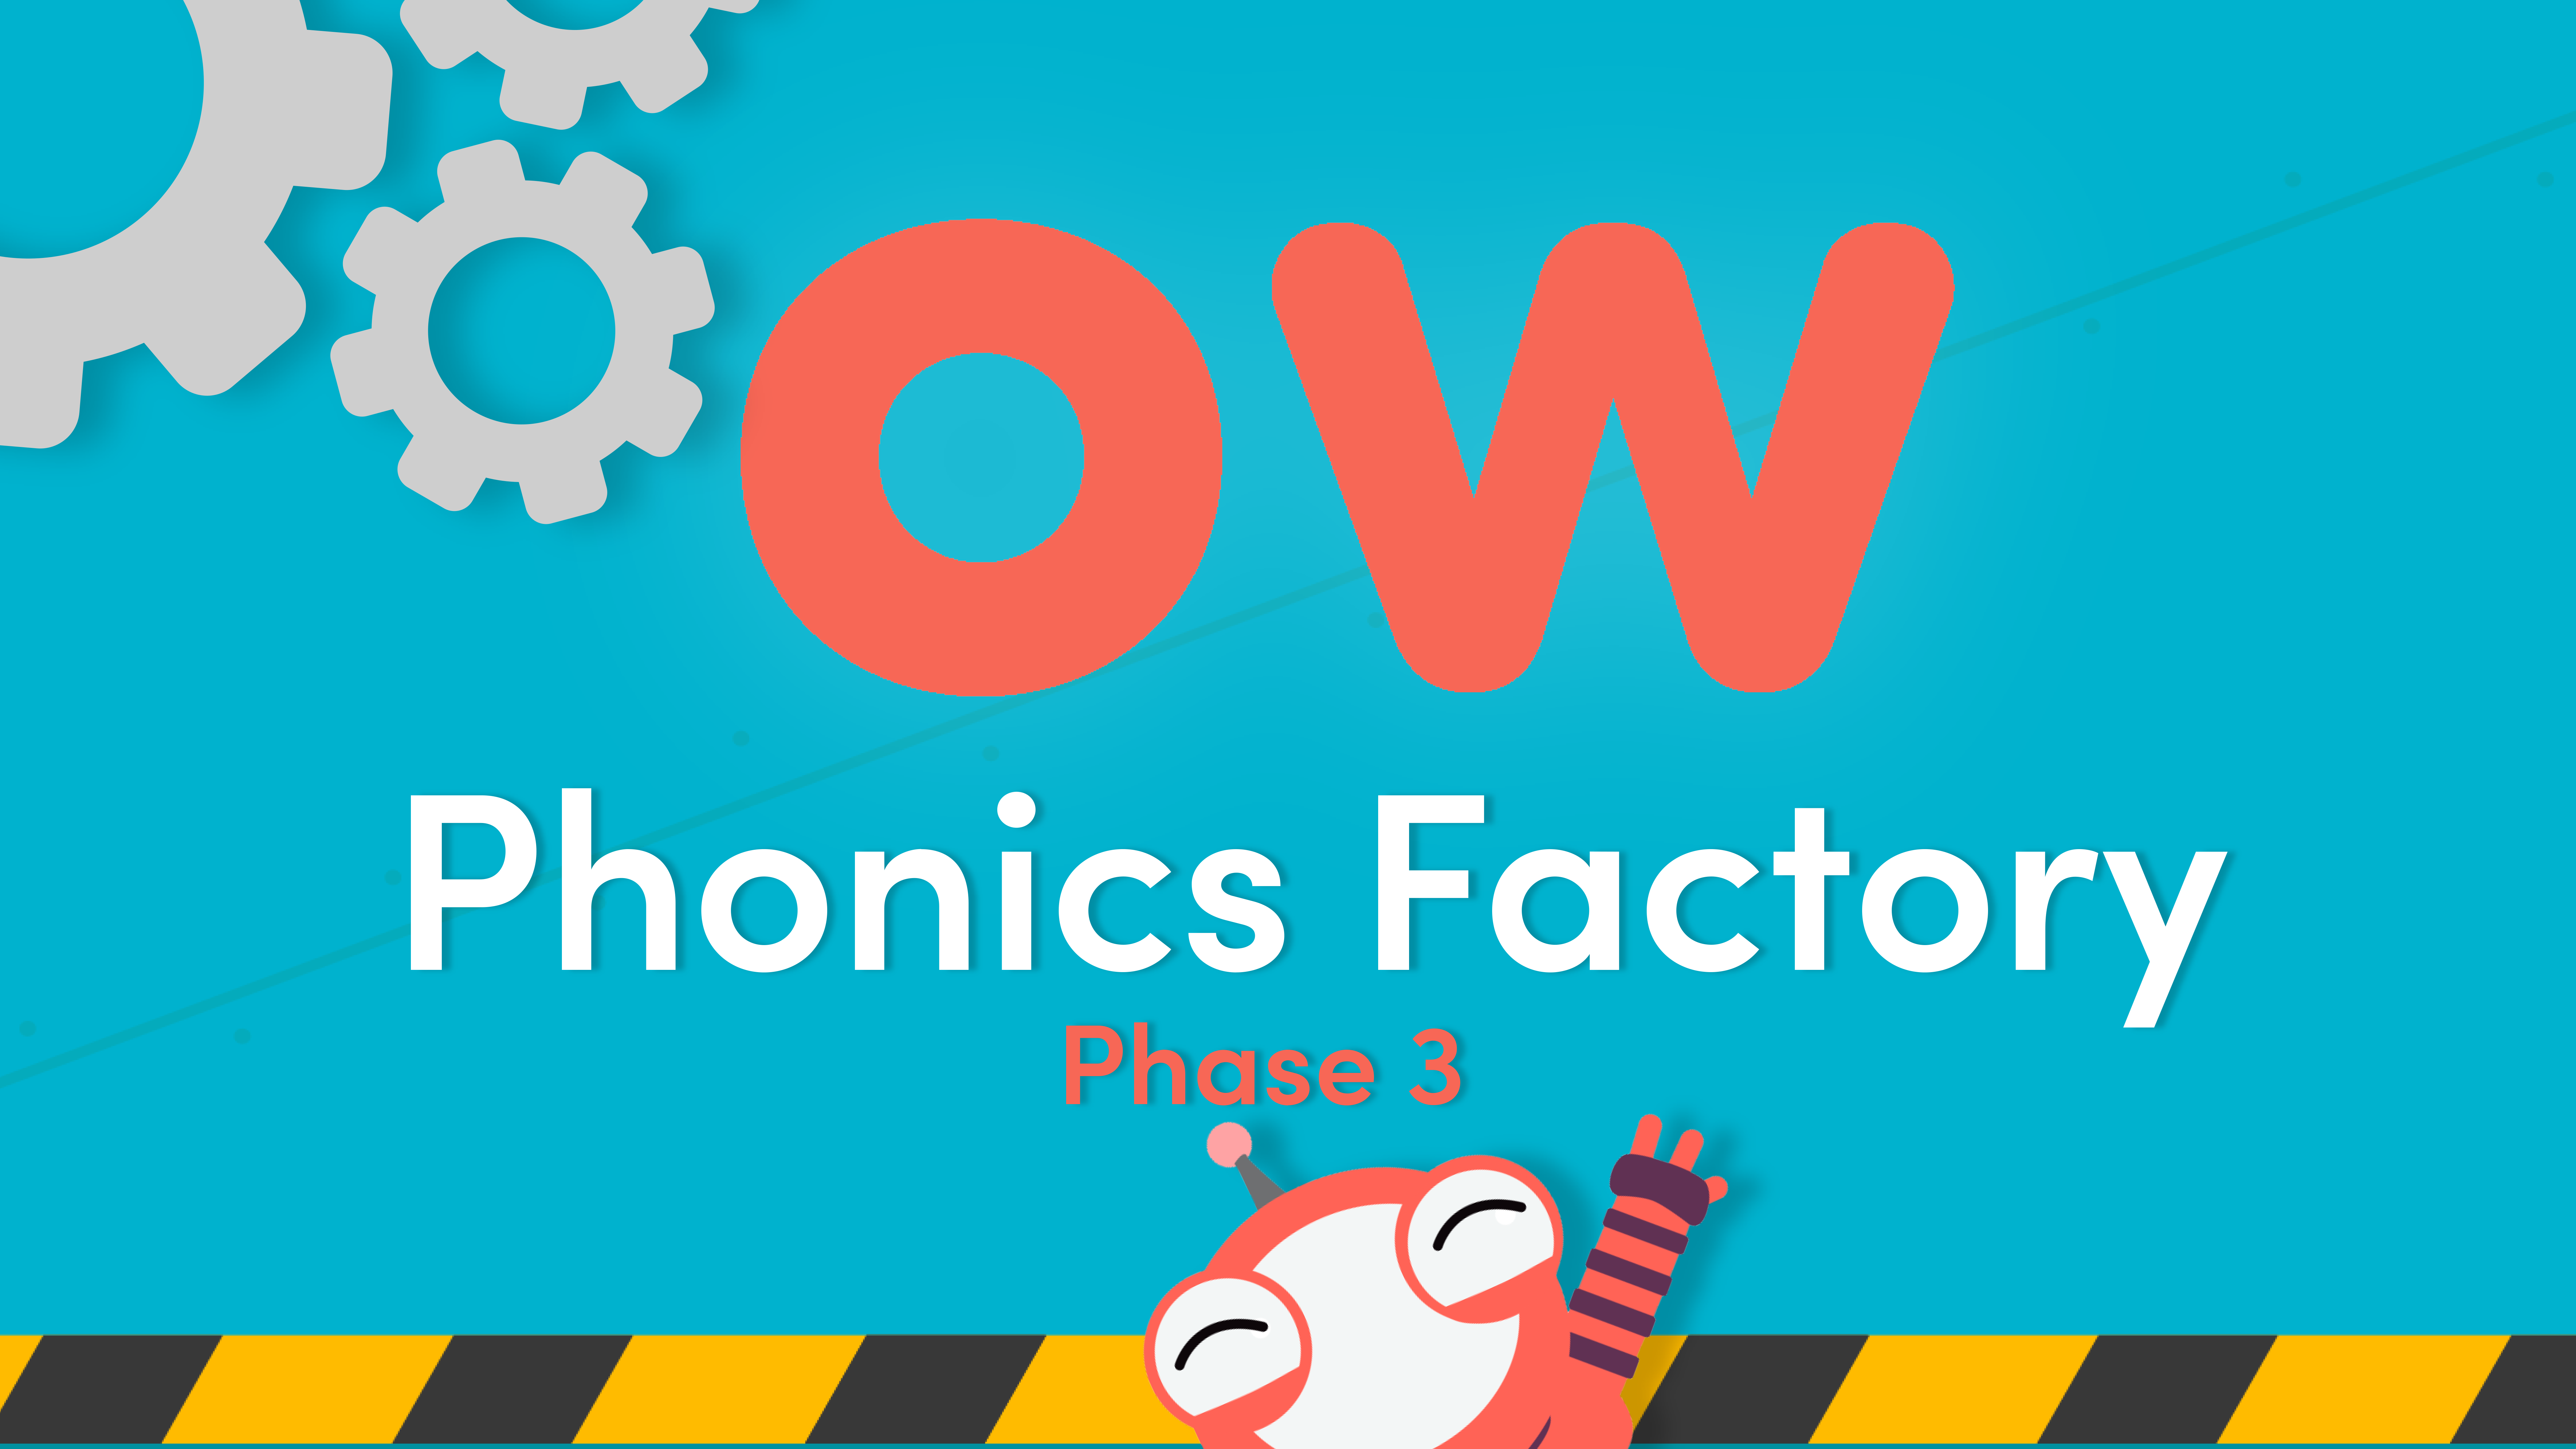 Phonics Phase 3 ow Sound Video in the Phonics Factory